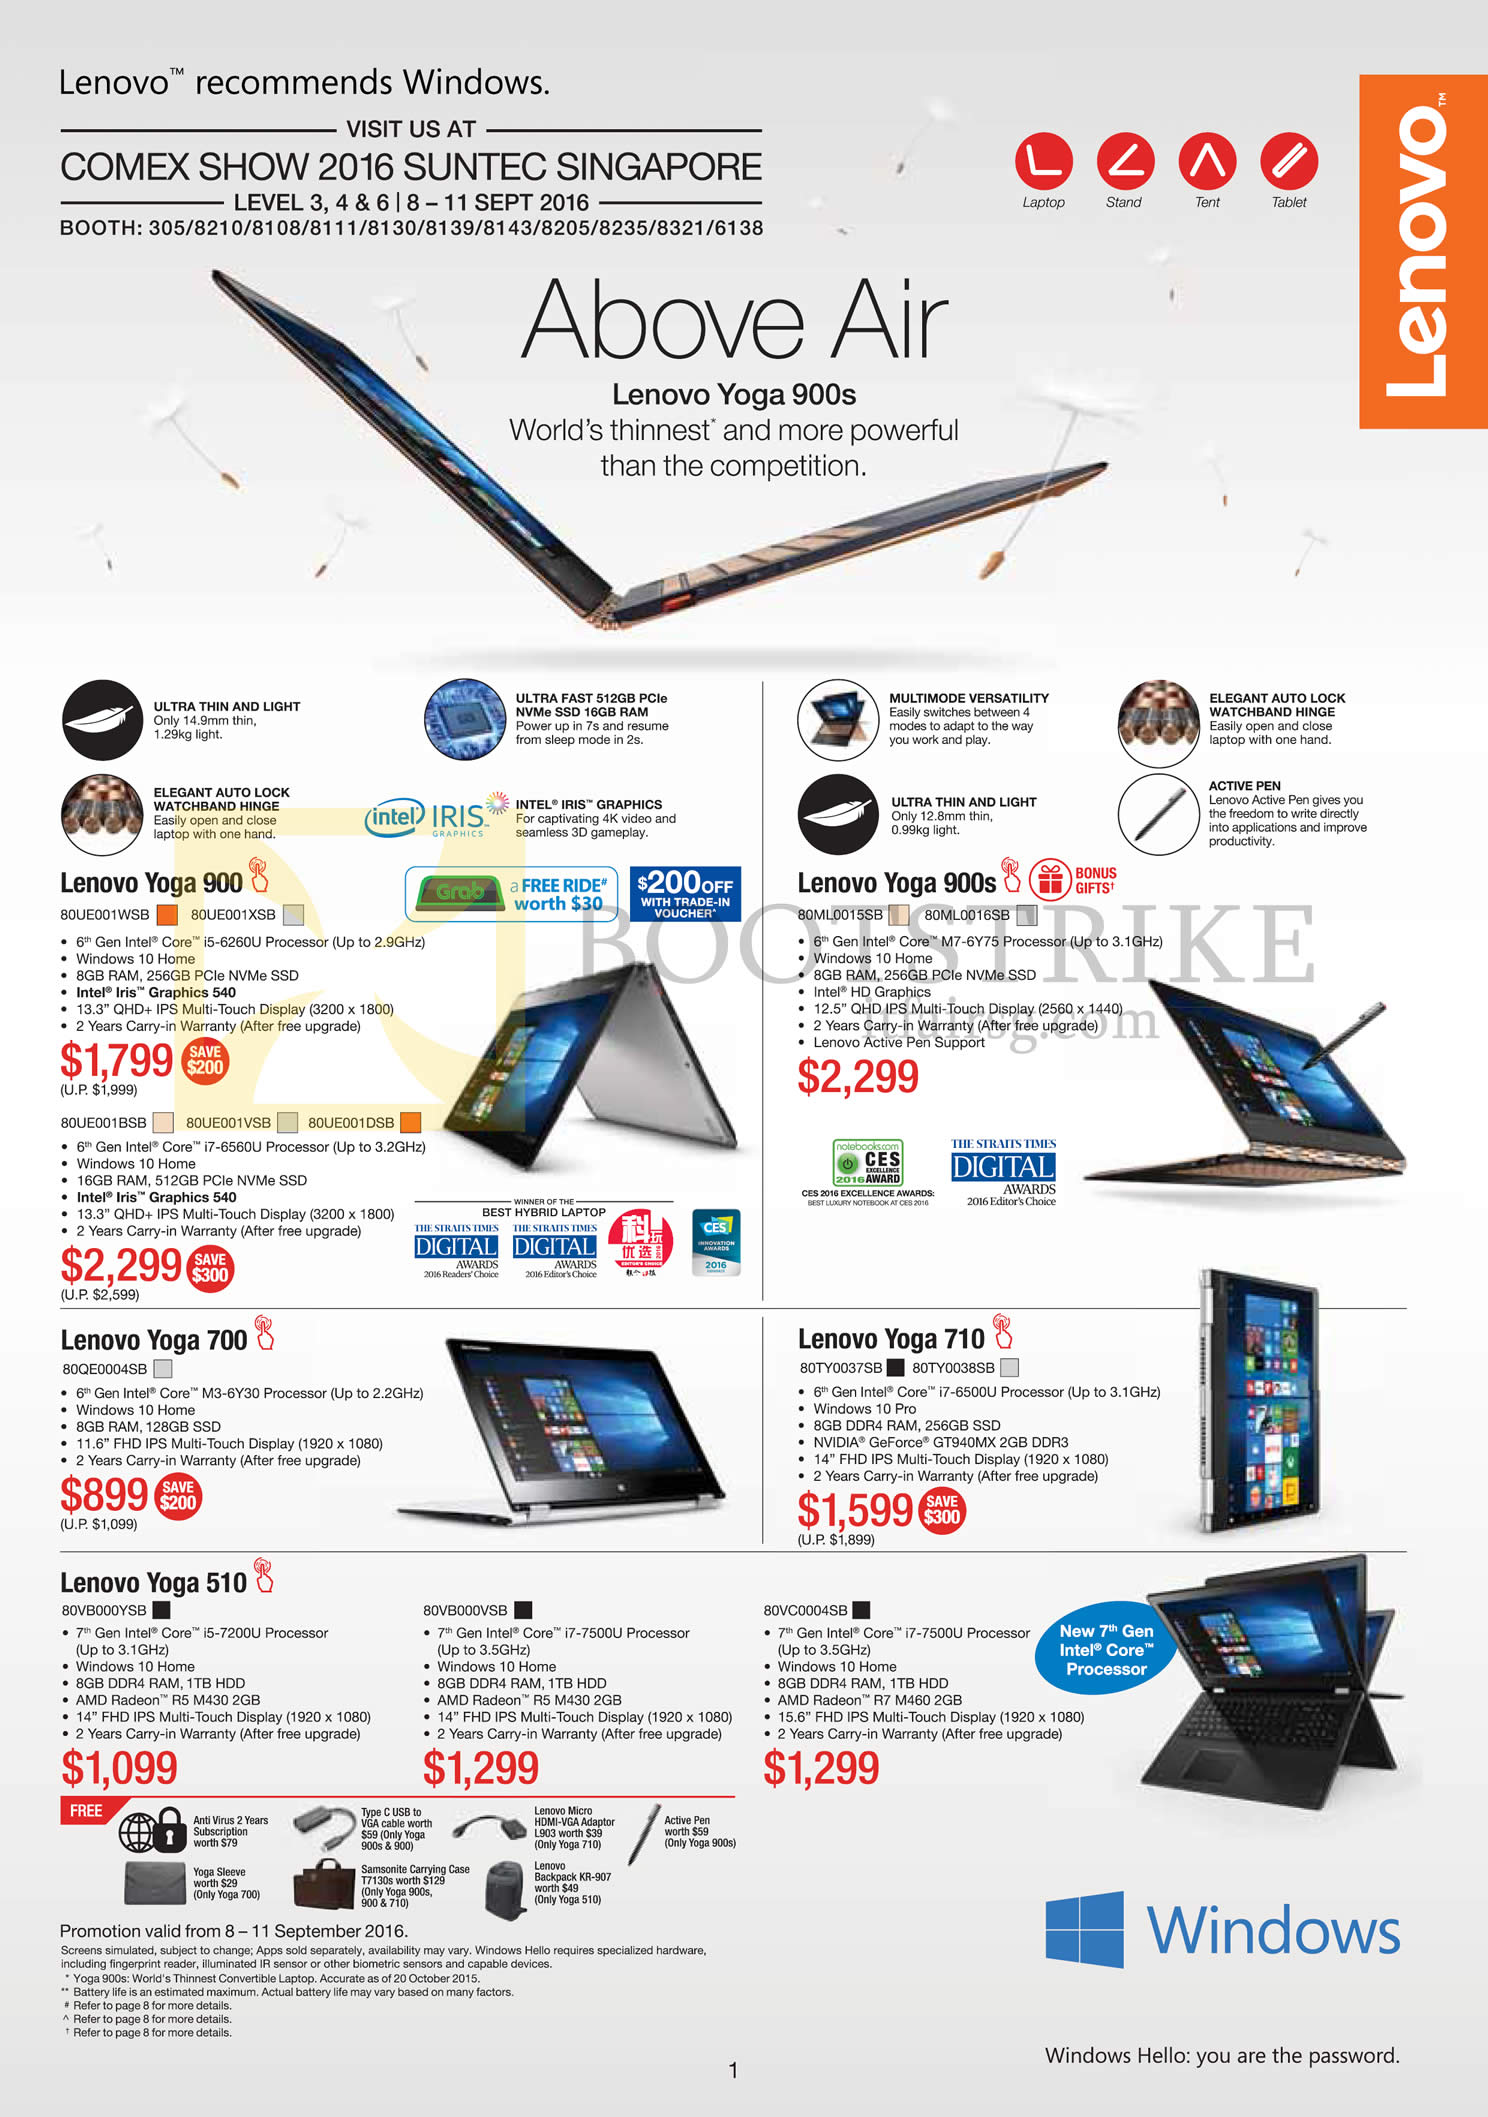 COMEX 2016 price list image brochure of Lenovo Notebooks Yoga 900, 900s, 700, 710, 510